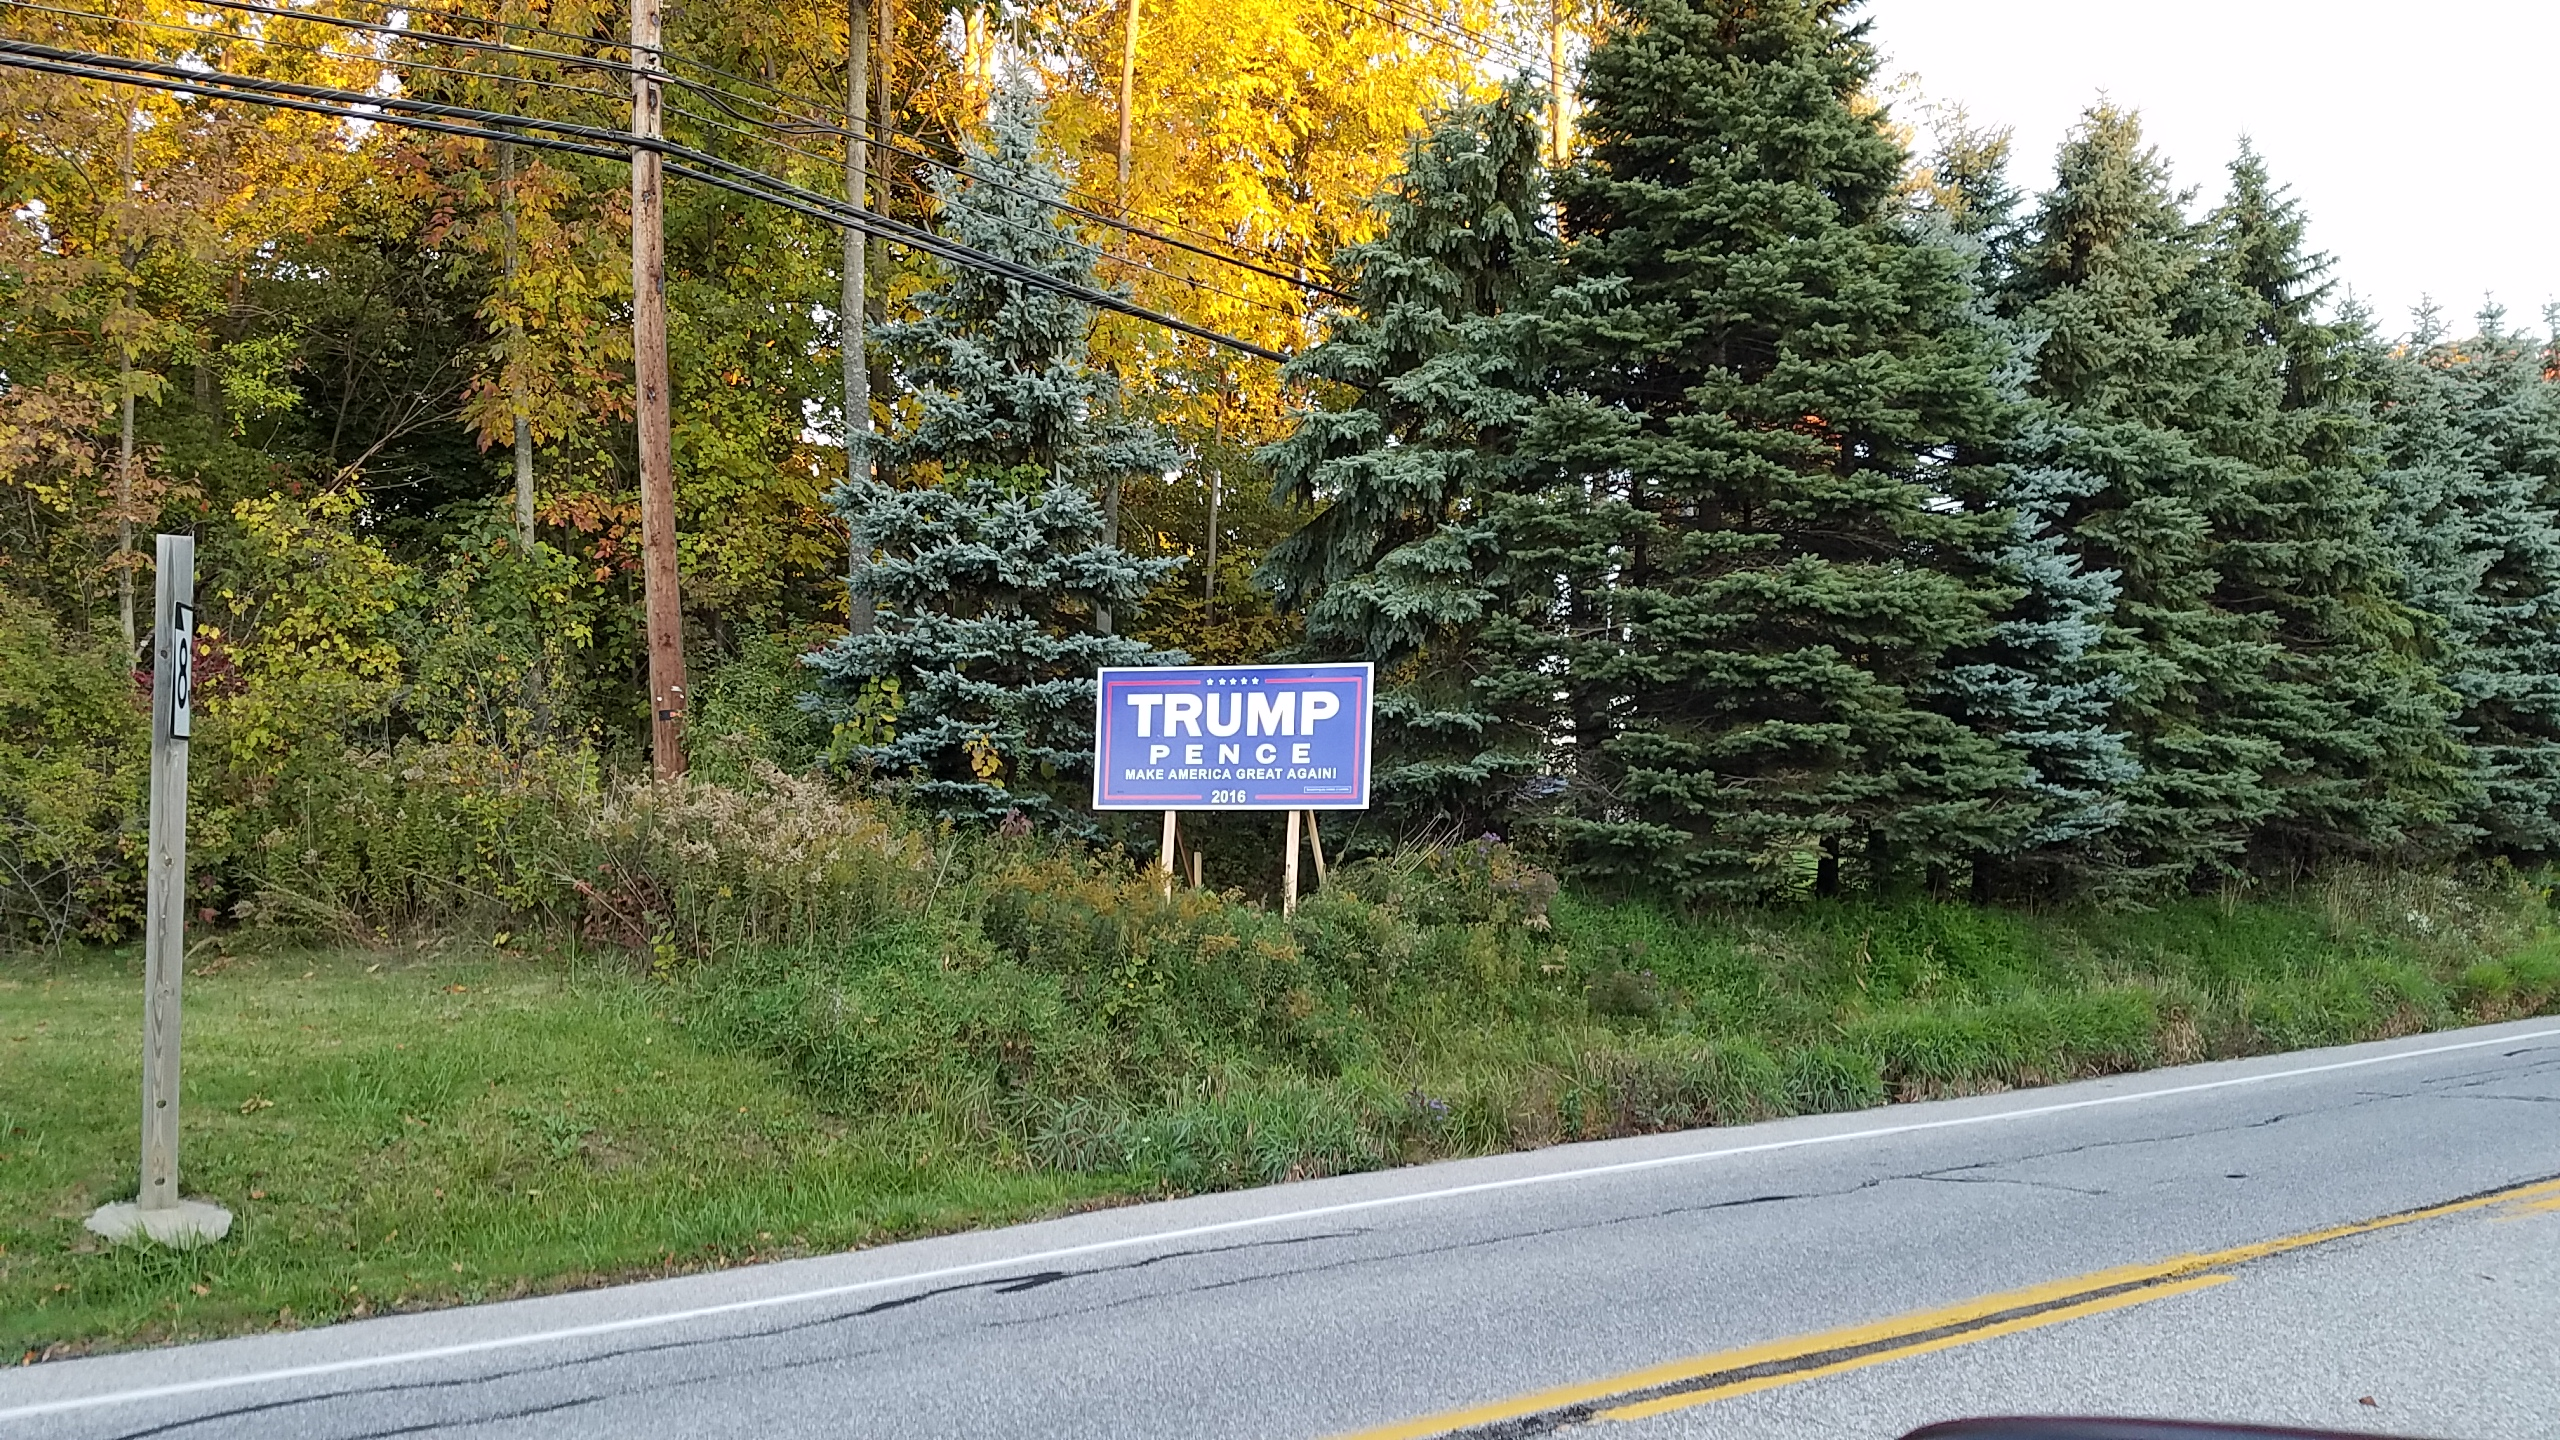 Trump_Large_Sign_101516